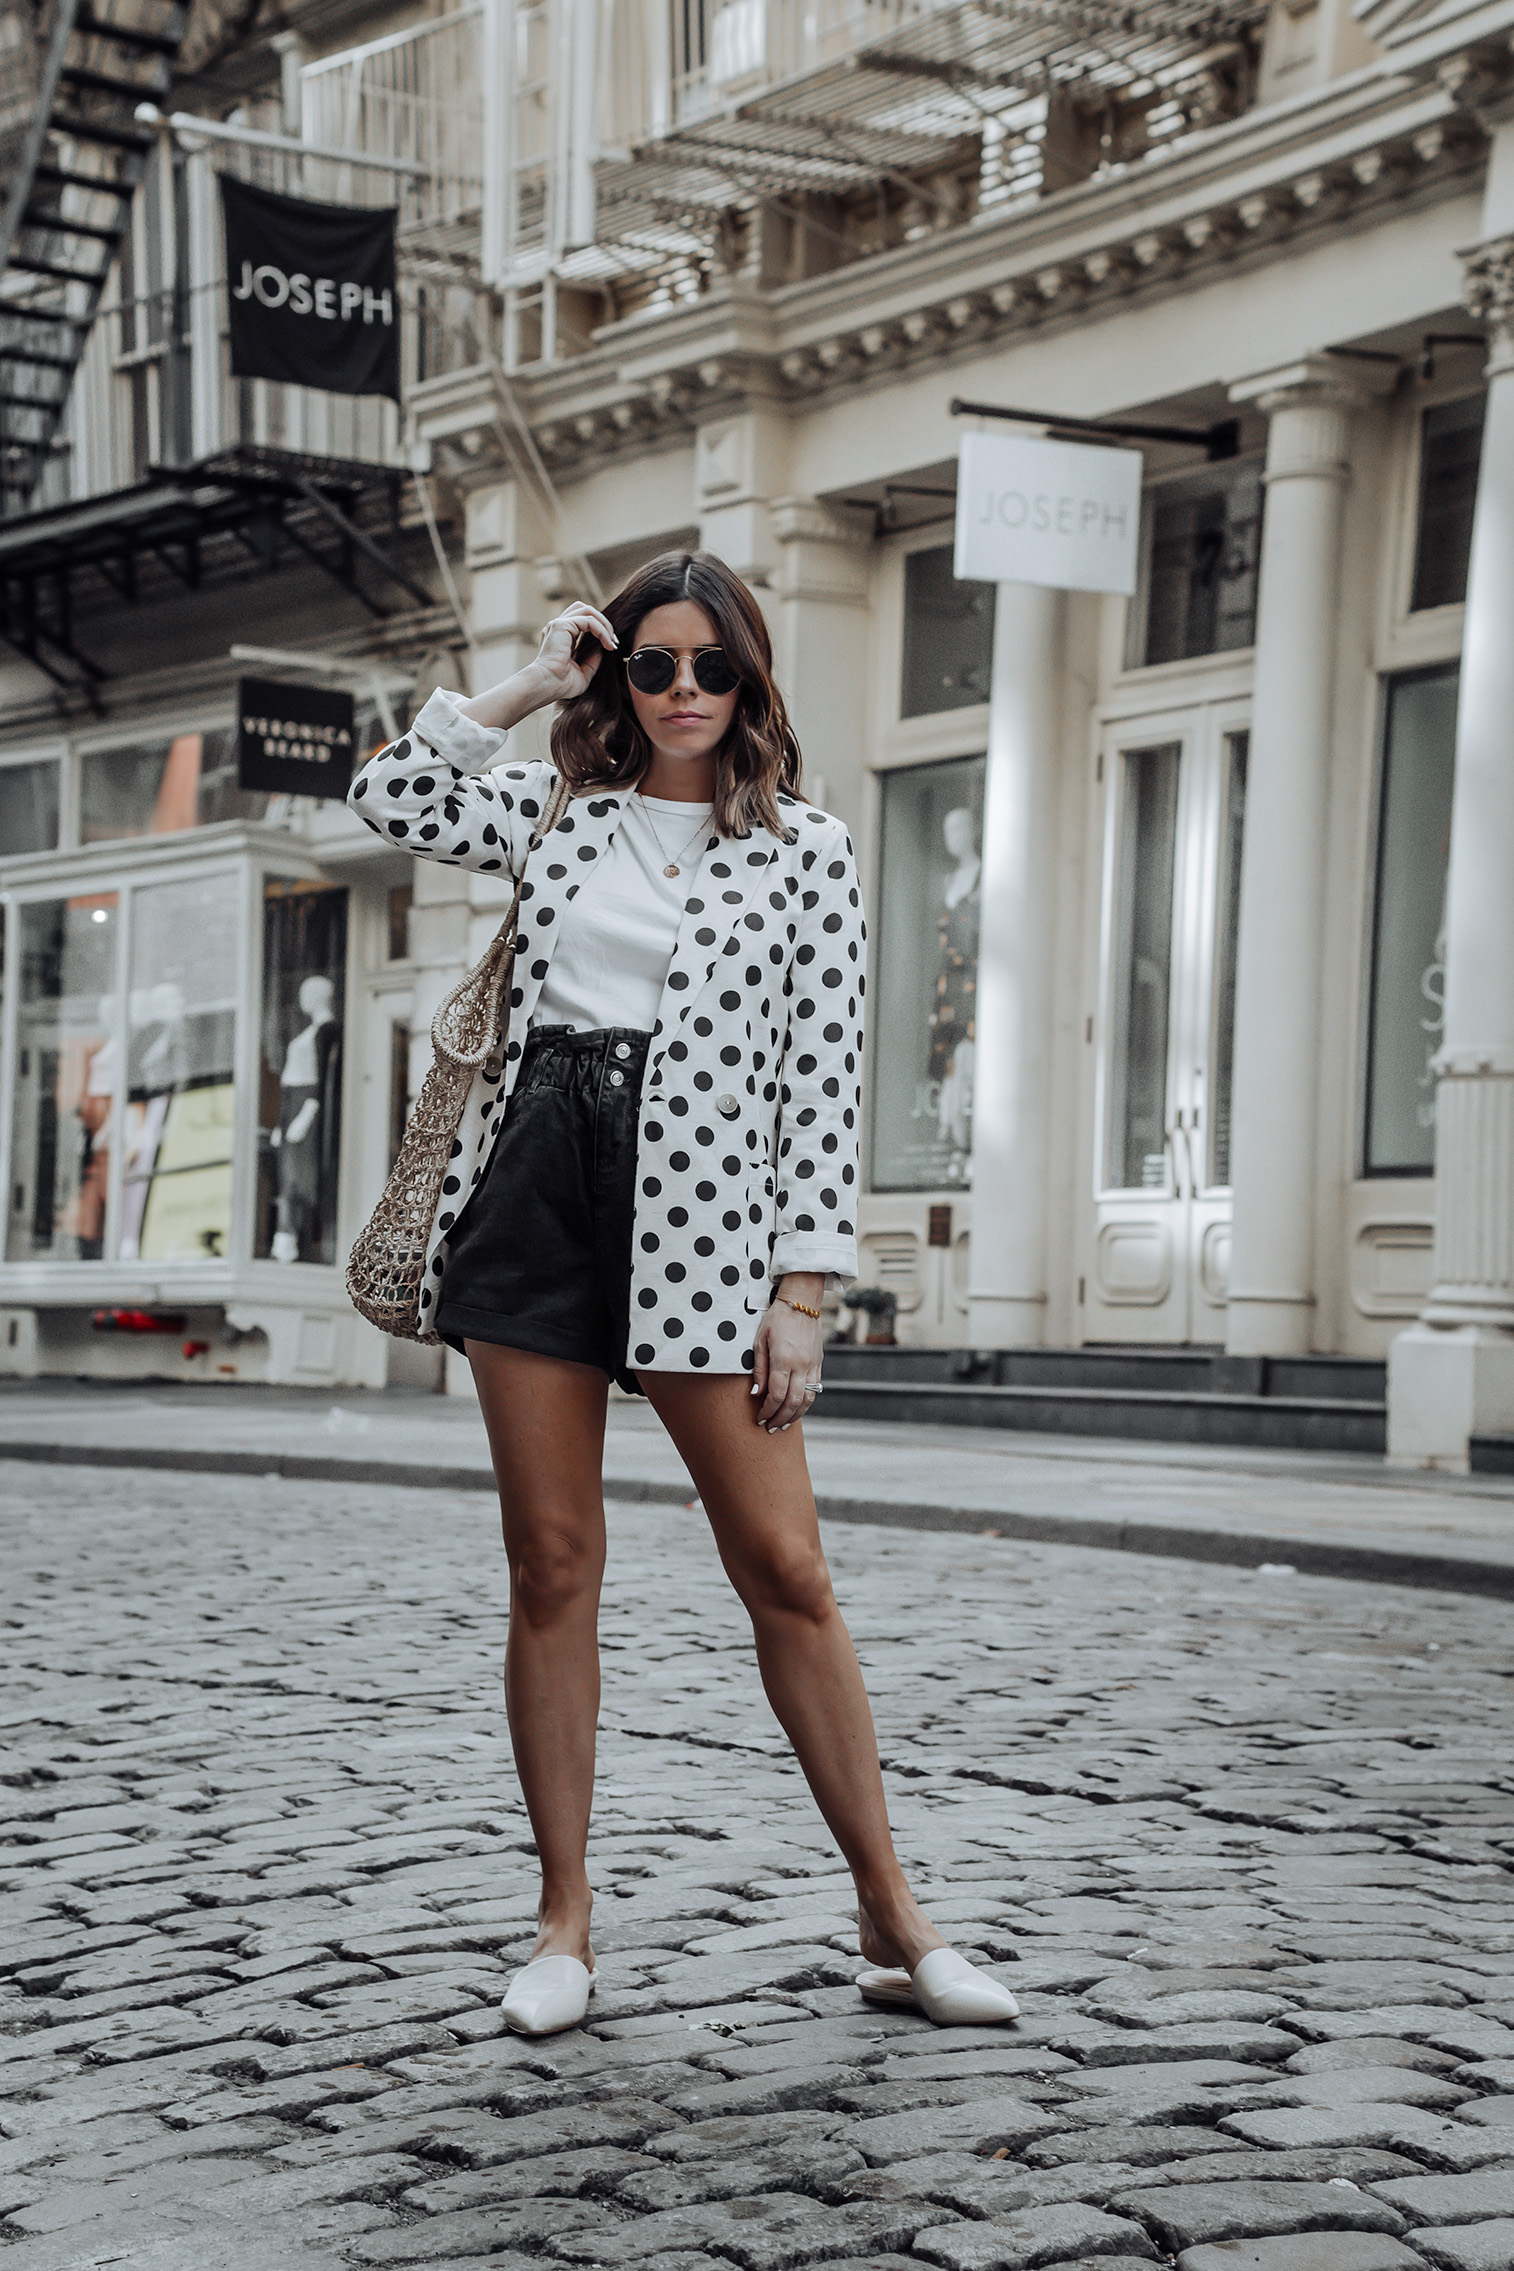 Linen spotted blazer | Click to shop the look: Black Paper Bag Shorts (similar) | Linen Spotted Jacket | Straw Tote bag (similar) | #liketkit #blazer #streetstyle #ootd #strawbag #topshop #casualfashion #nycblogger